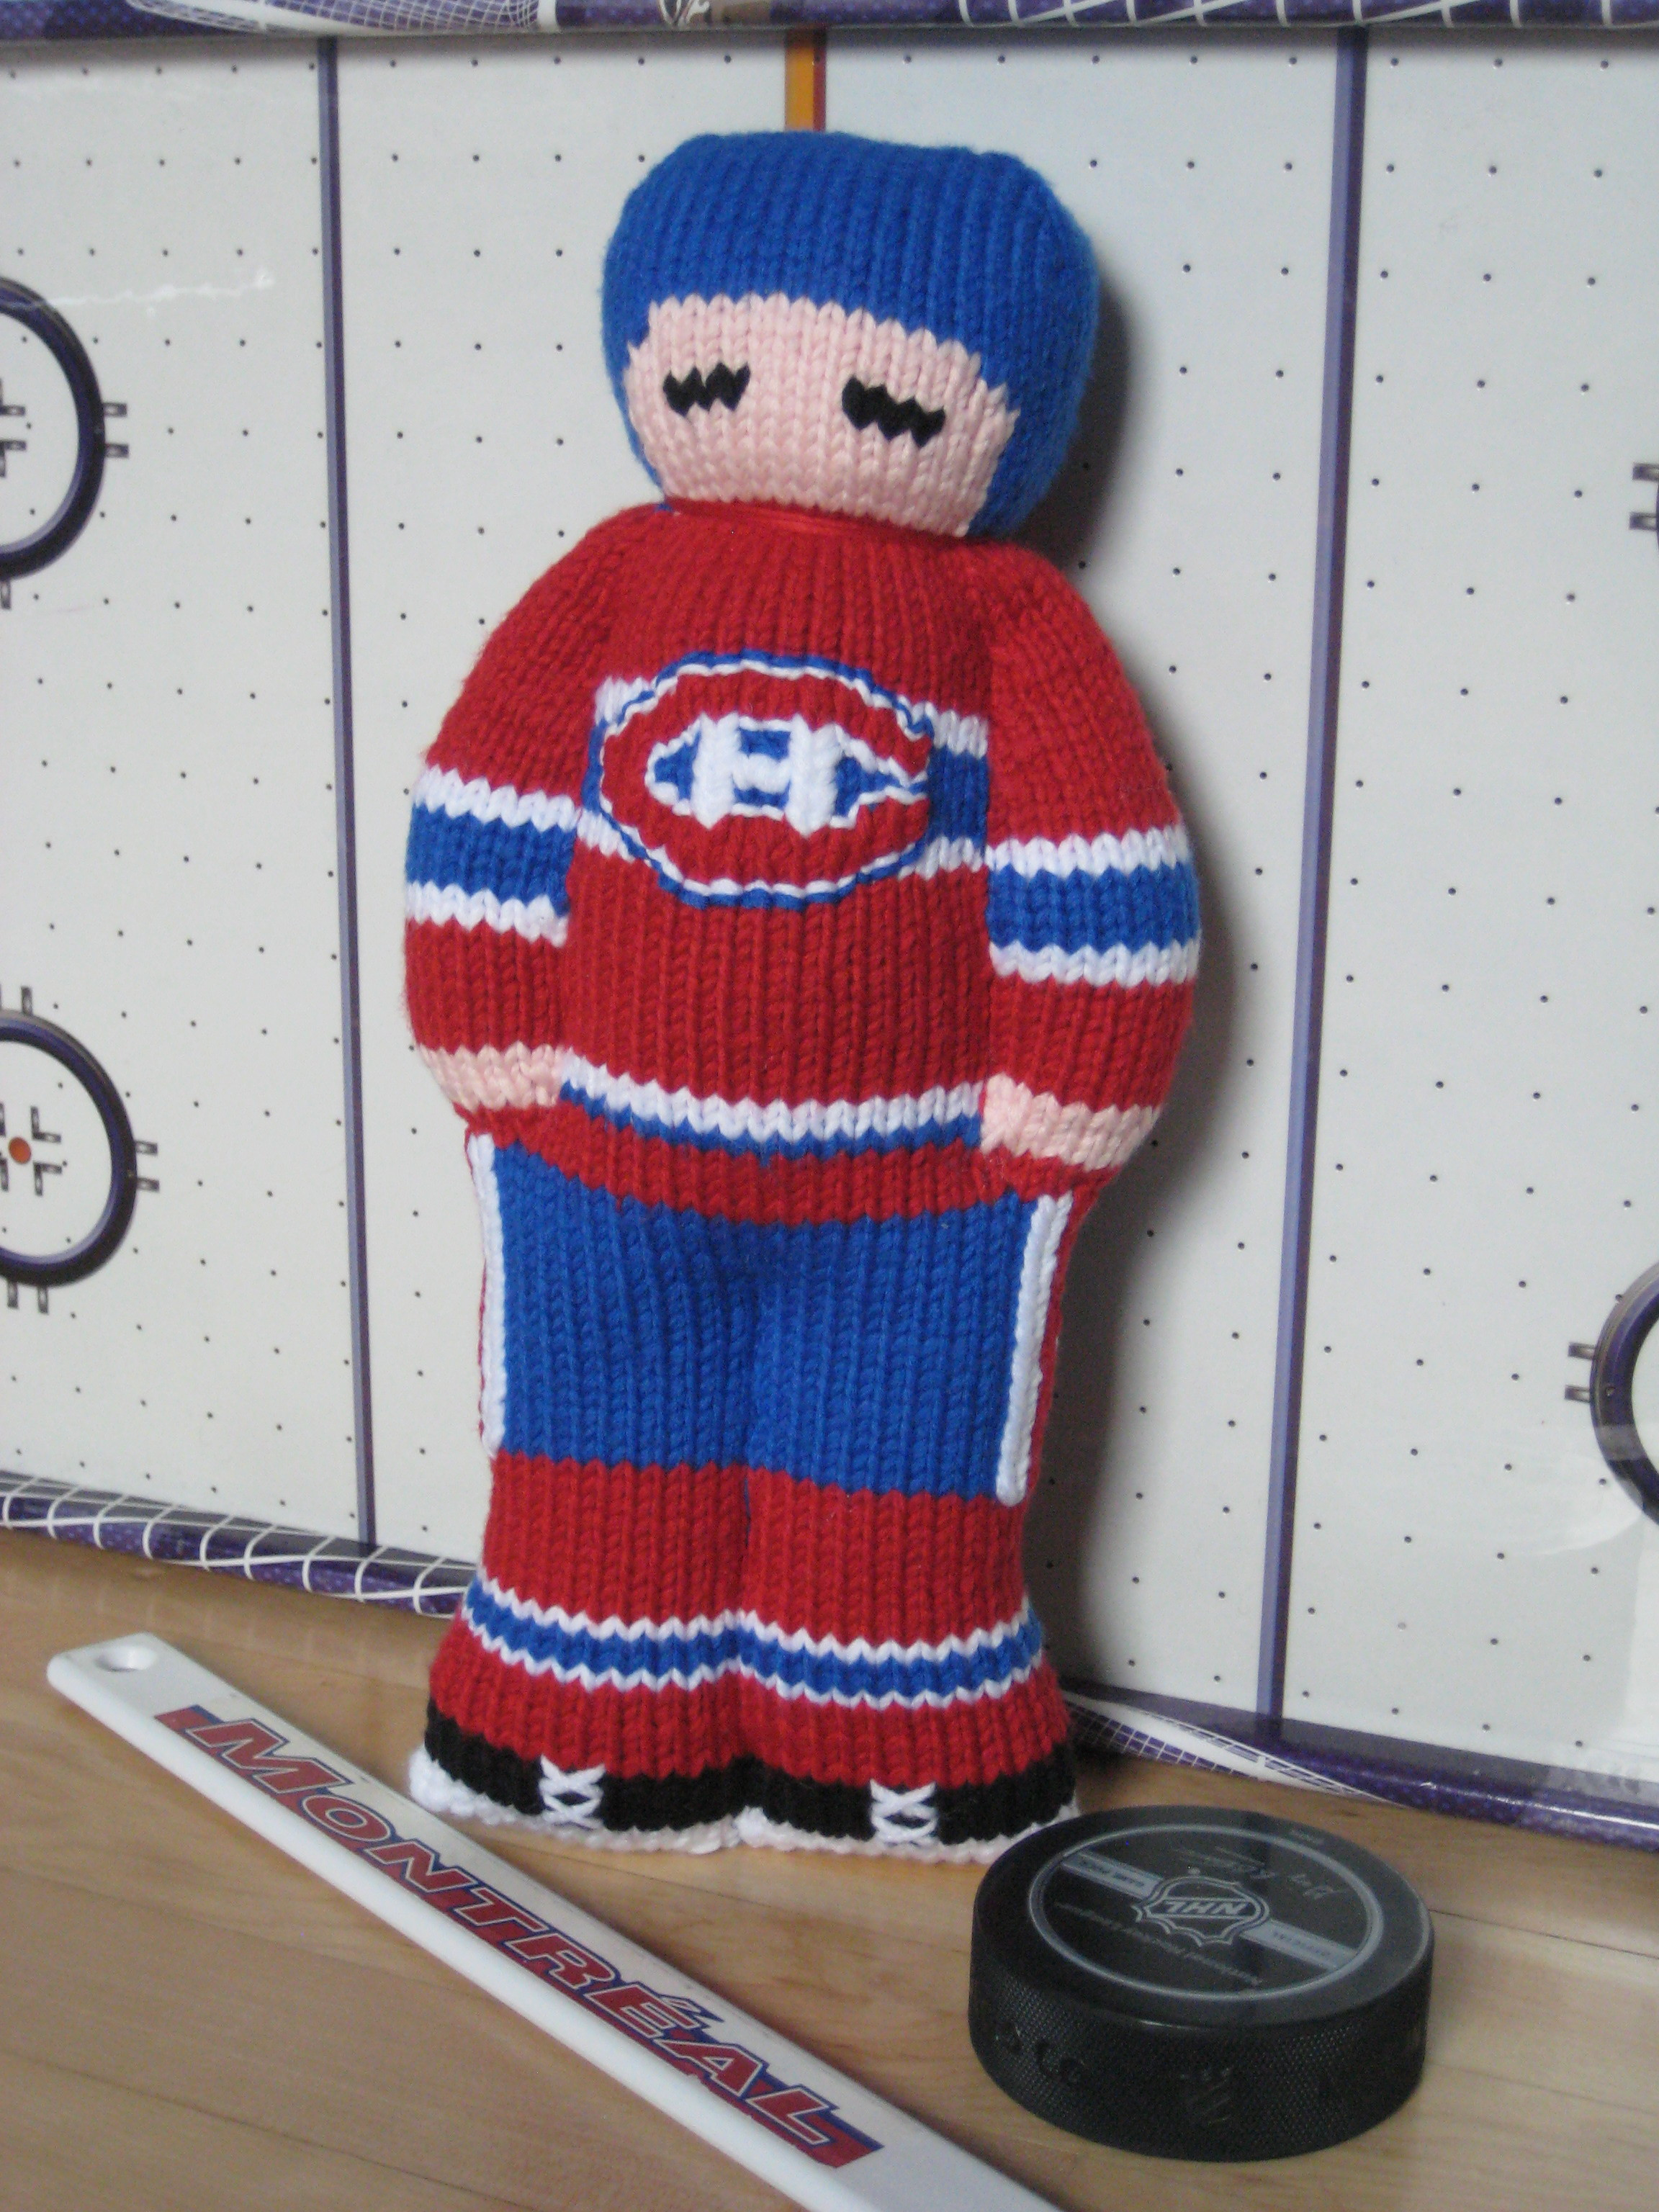 Hockey Knitting Patterns : 301 Moved Permanently